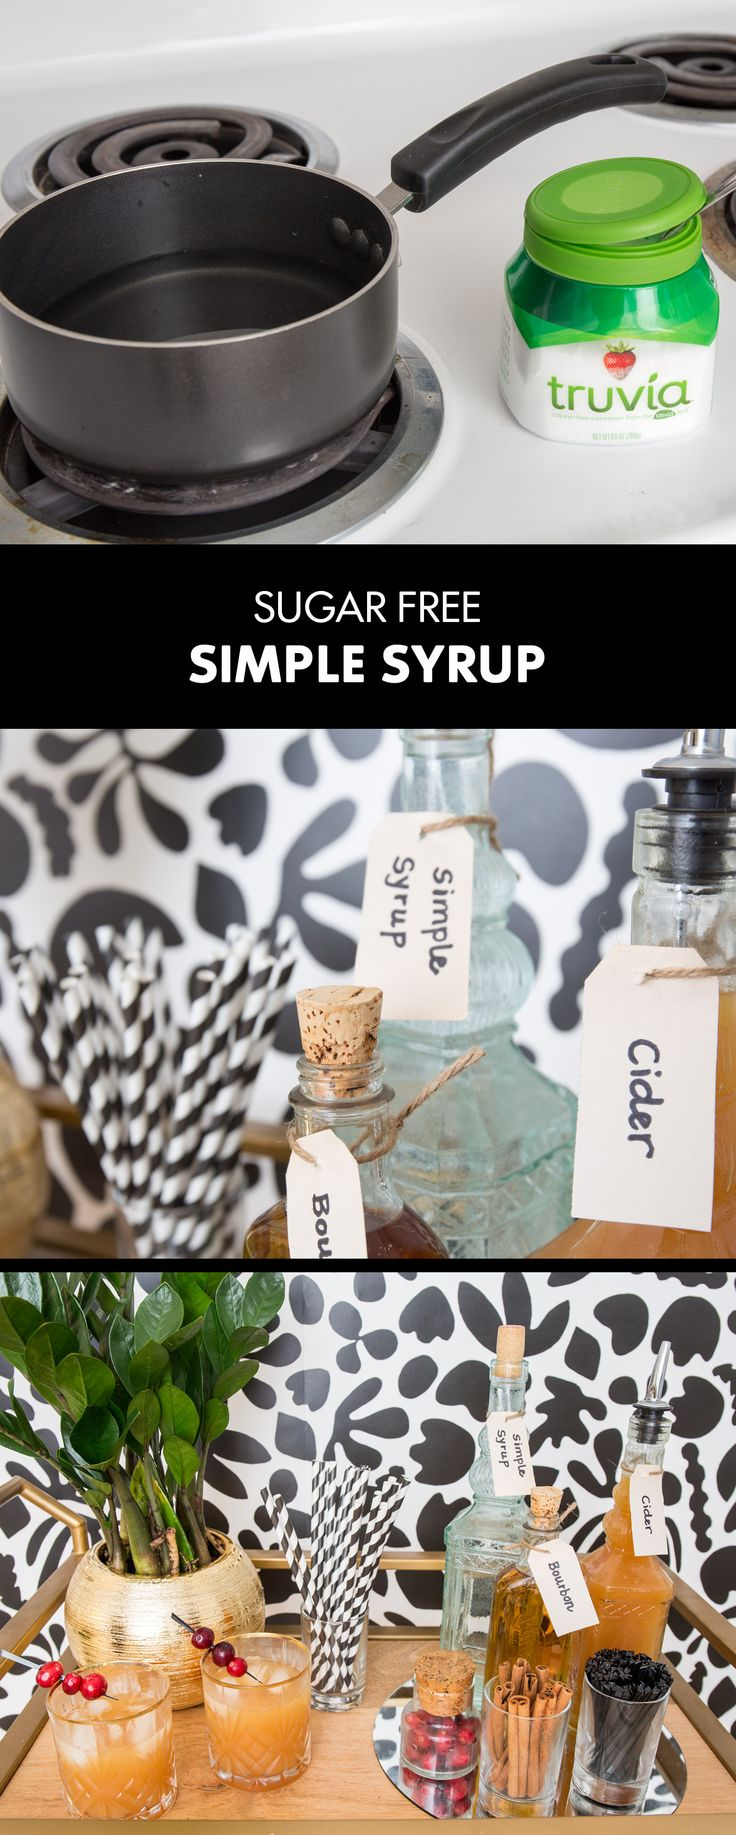 Apple Martini or Whiskey Sour? Your fall cocktail party possibilities are endless when you've got Zero-Calorie Simple Syrup on-hand! Keep this staple on your bar cart for added sweetness in your favorite mixed drinks! Better yet, make two bottles and gift one to a friend!